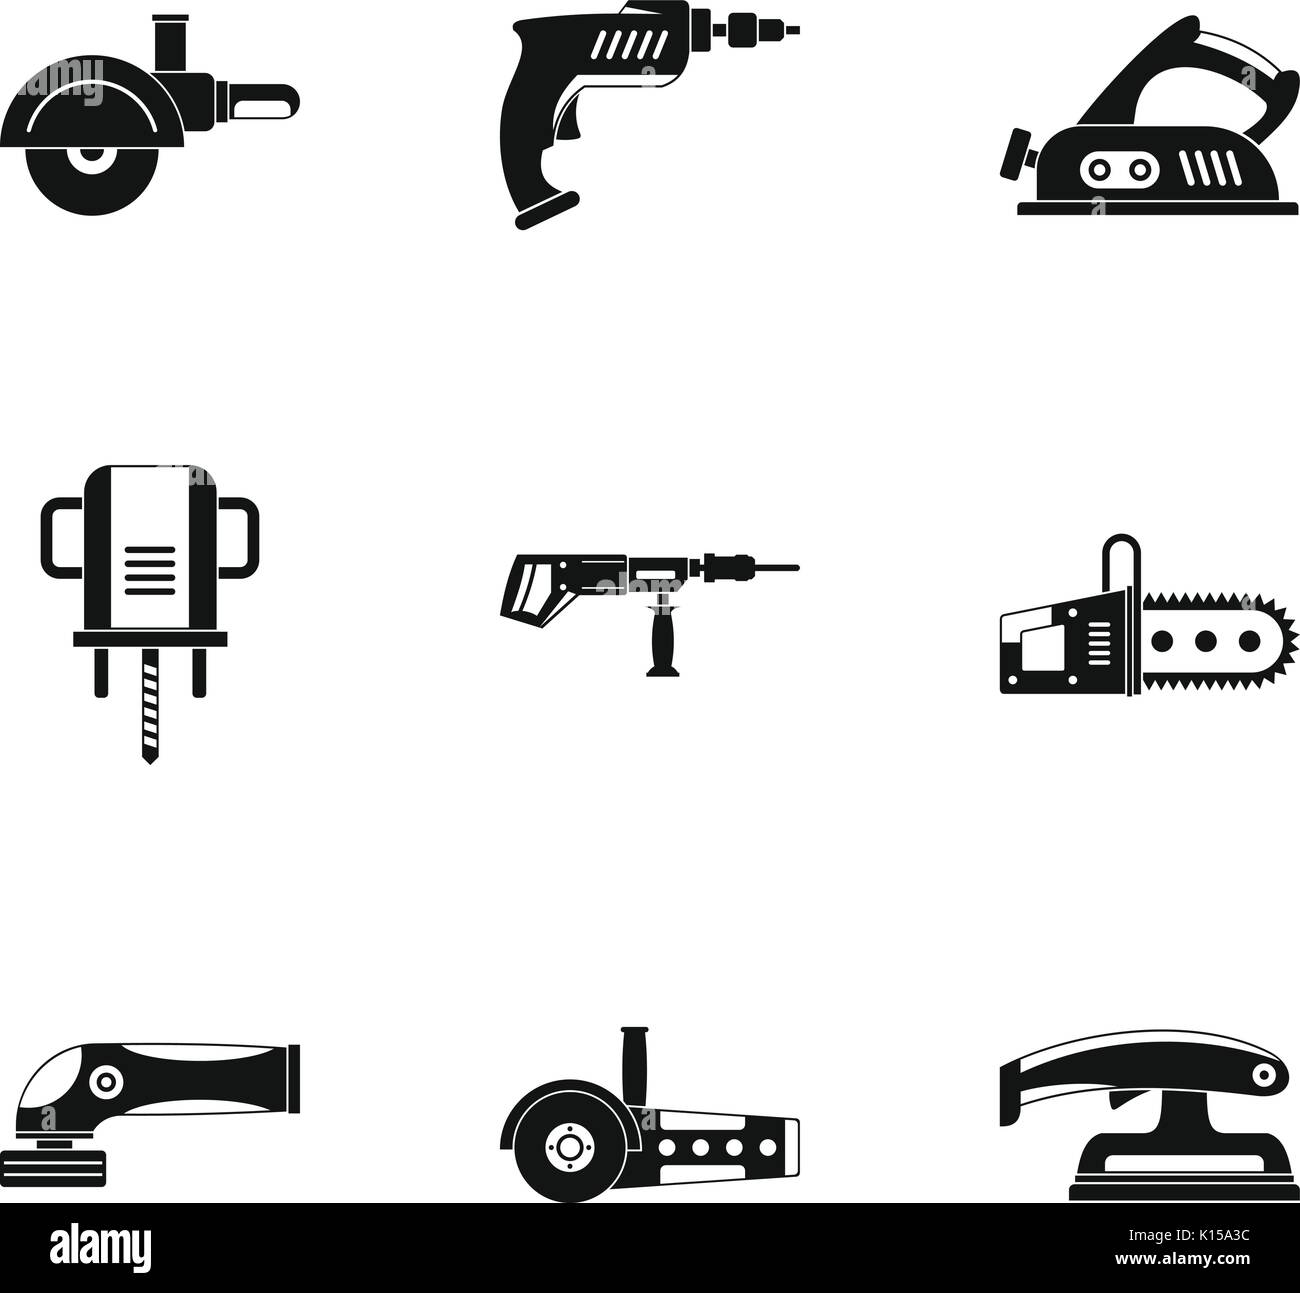 Power electric tool icon set, simple style - Stock Image